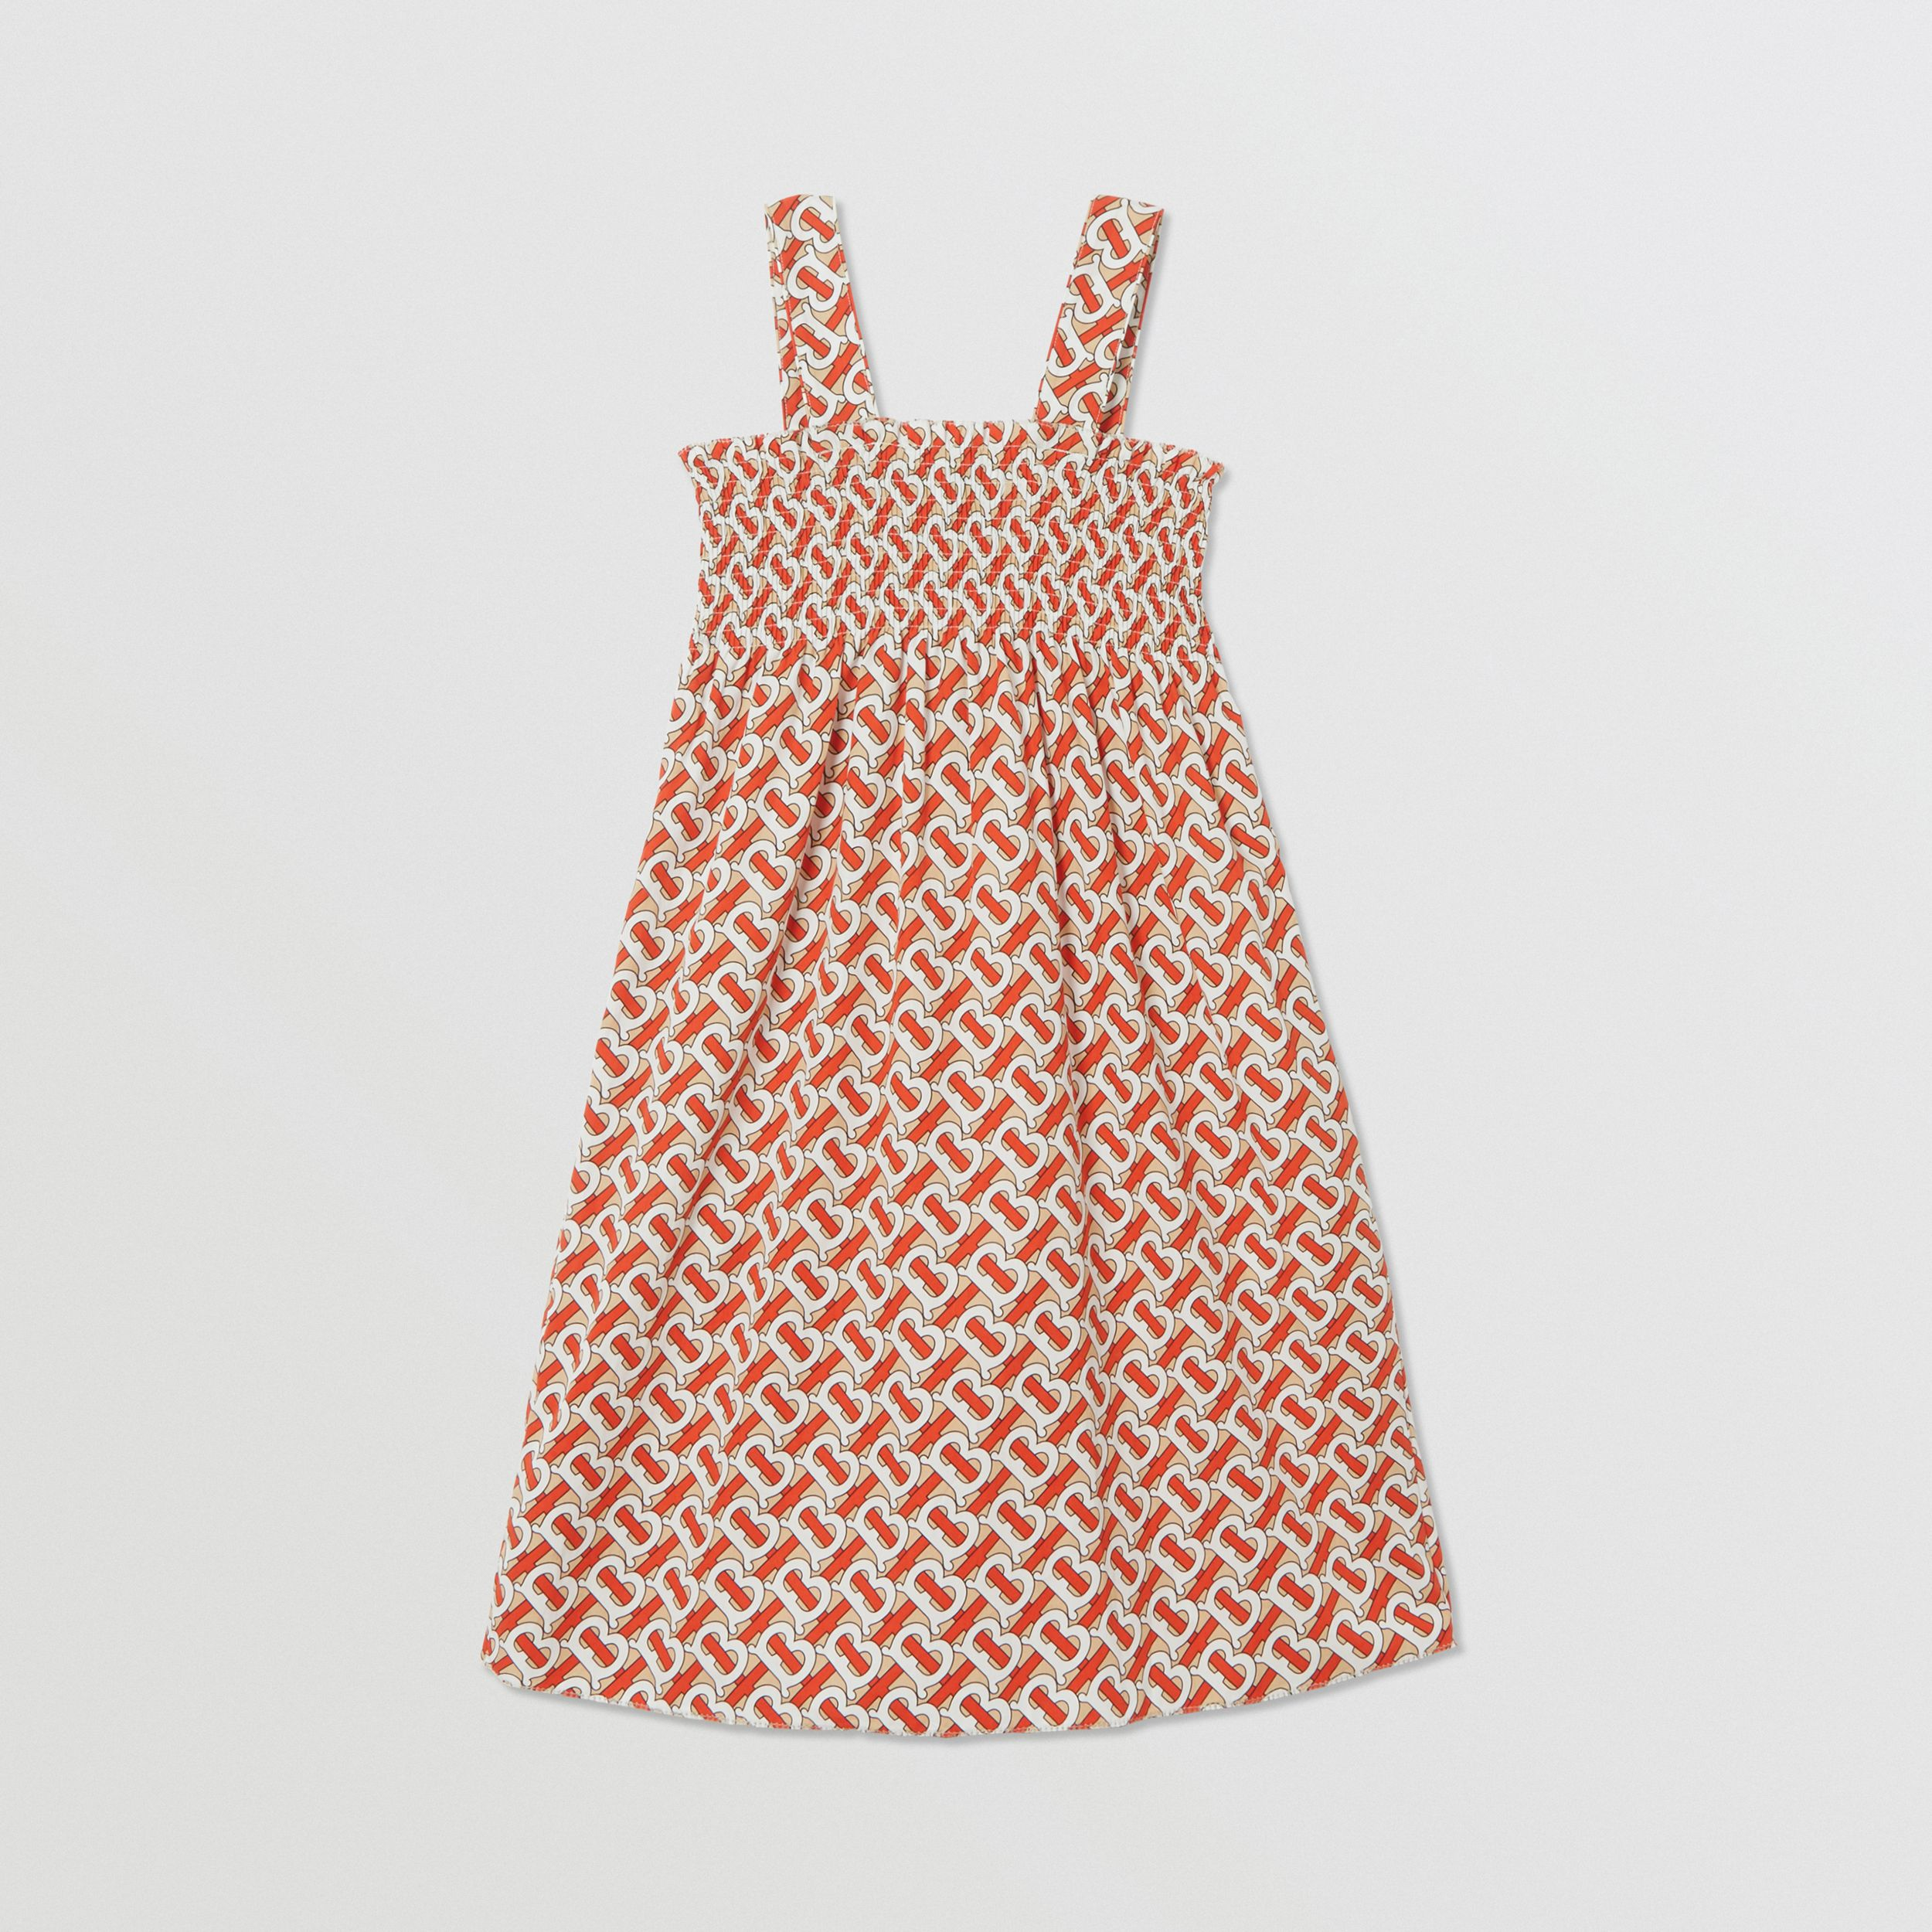 Smocked Monogram Print Cotton Poplin Dress in Vermilion Red | Burberry United Kingdom - 4